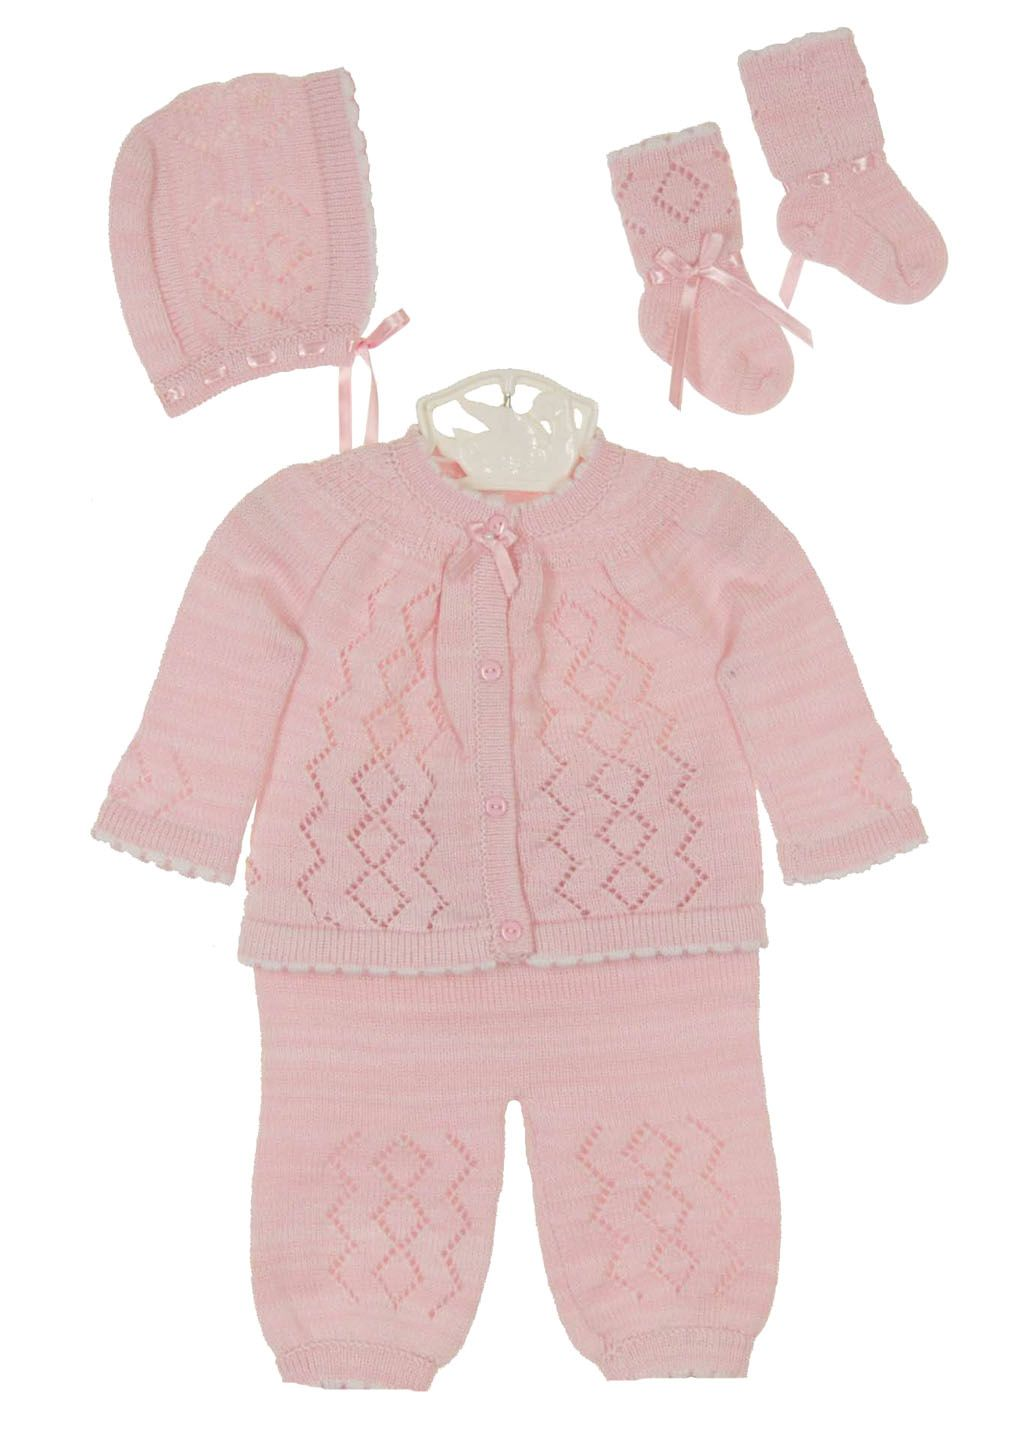 ebd325a66 NEW Will Beth Pink Knit Sweater Set with Matching Hat and Socks ...